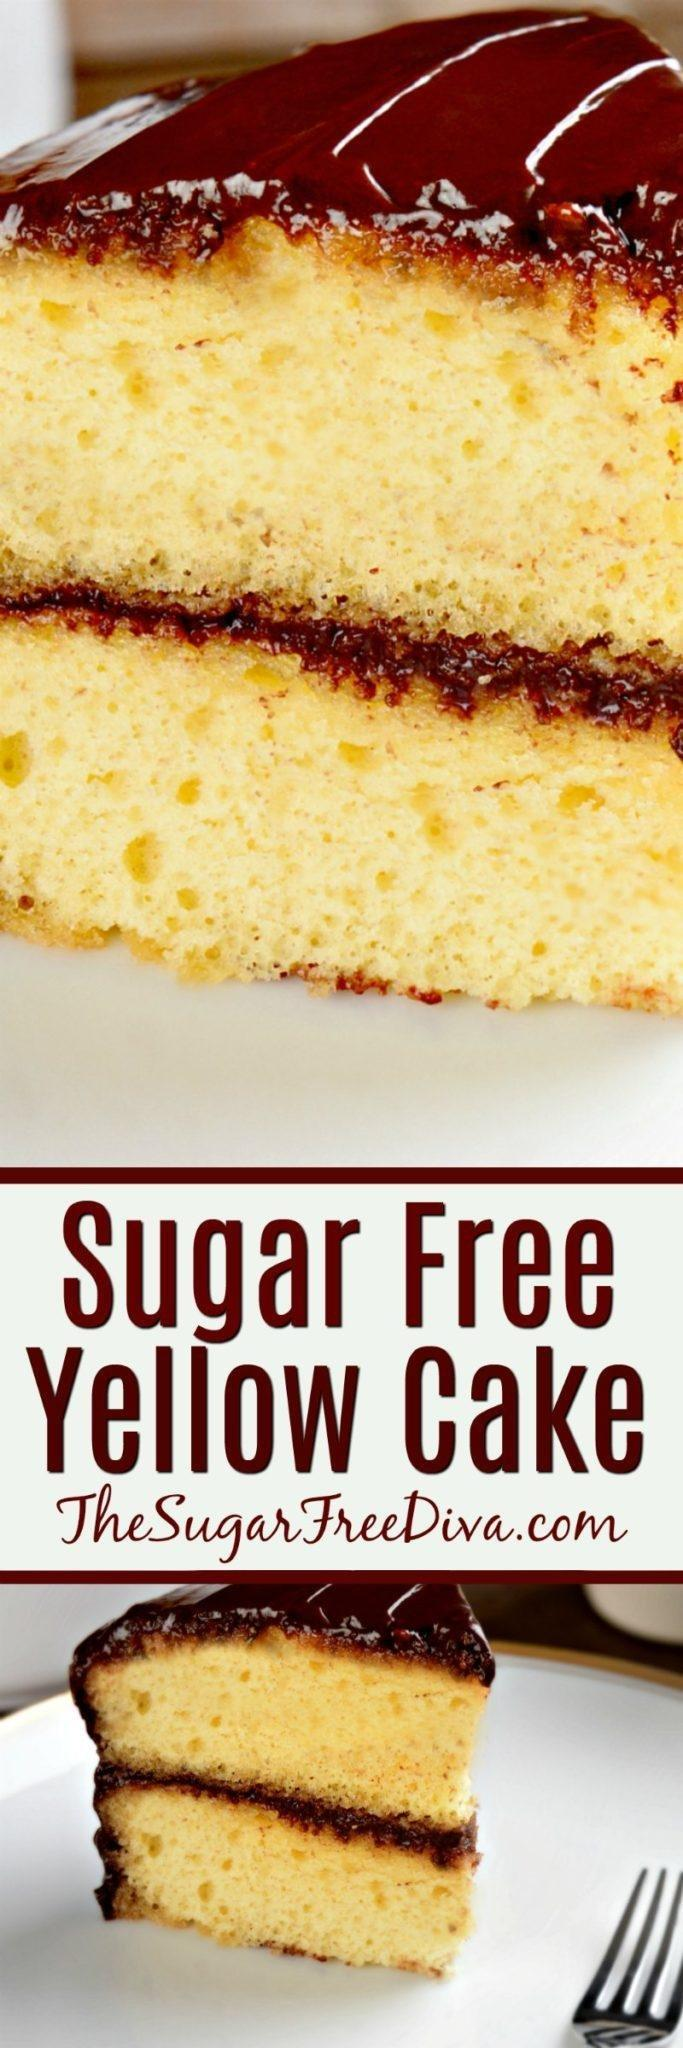 Sugar Free Cake Recipes For Diabetics